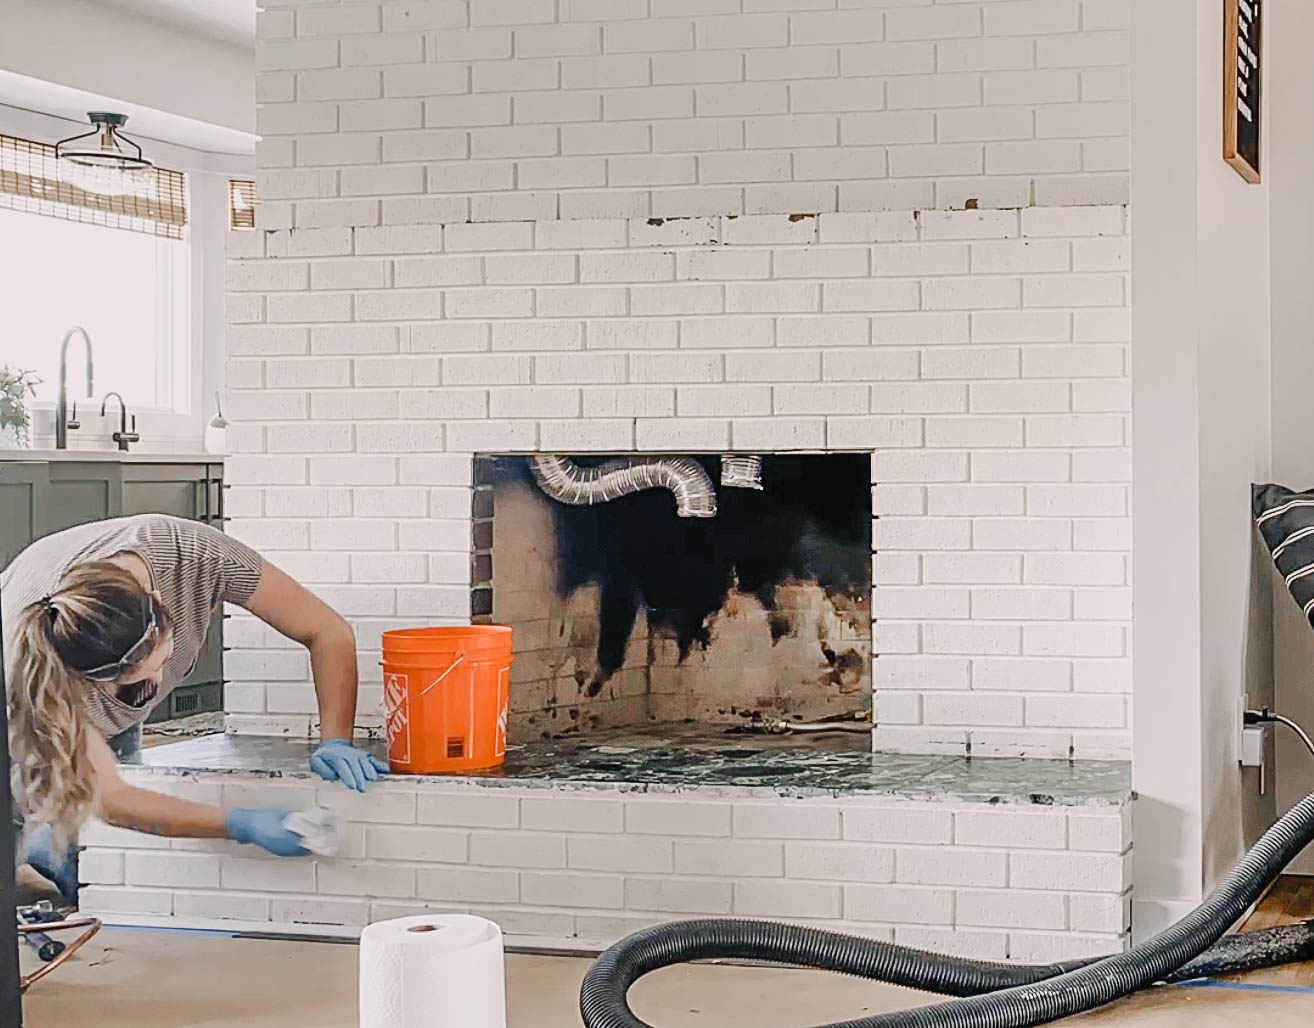 How to clean brick before painting- DIY fireplace makeover